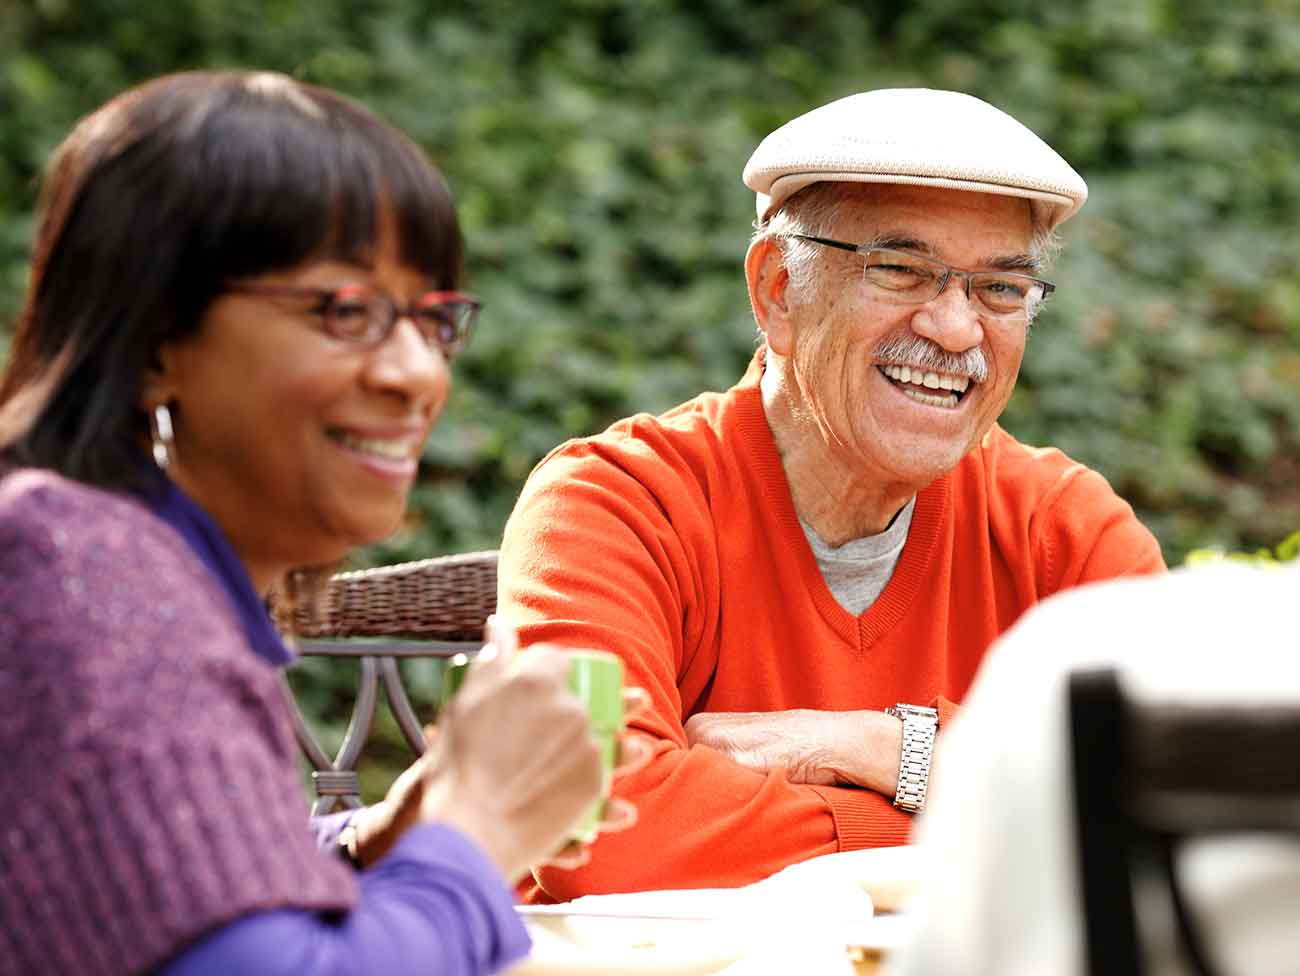 A multi-cultural group of smiling seniors, seated around a table outdoors.